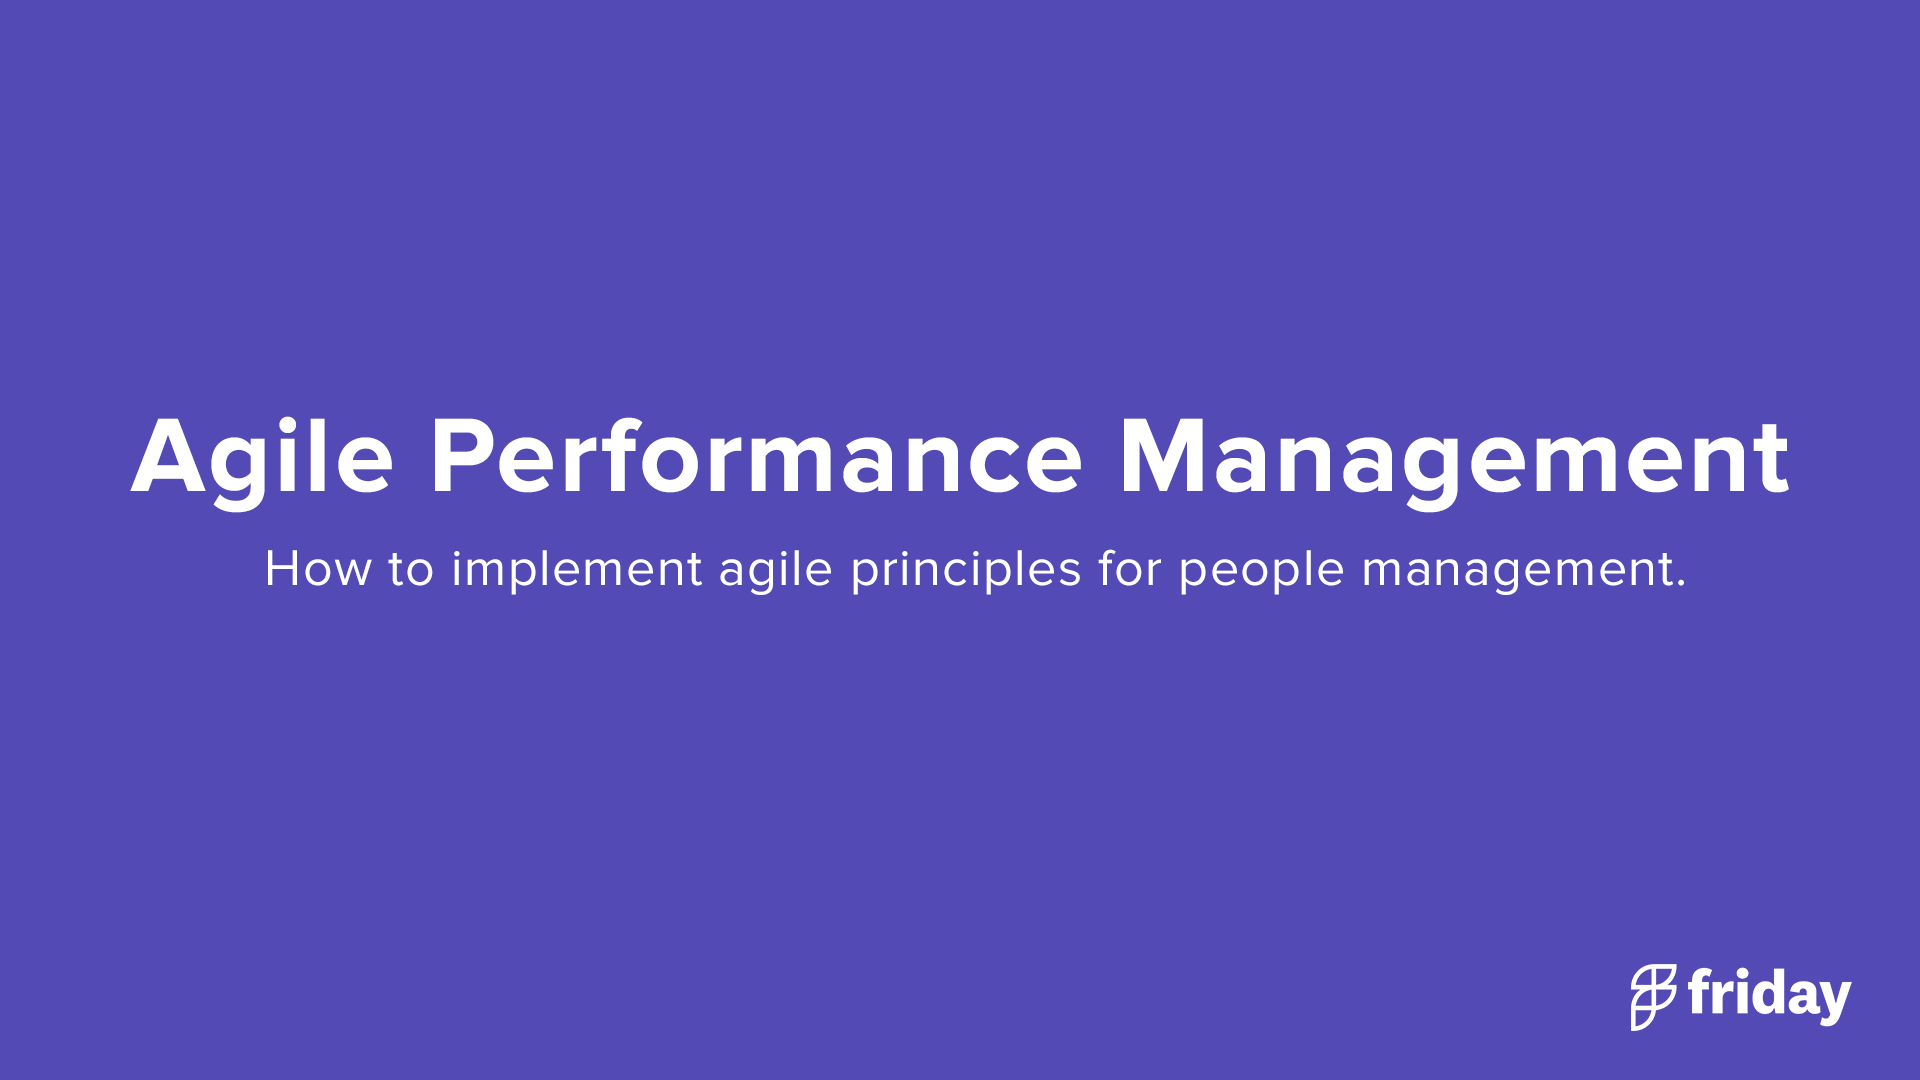 Agile Performance Management